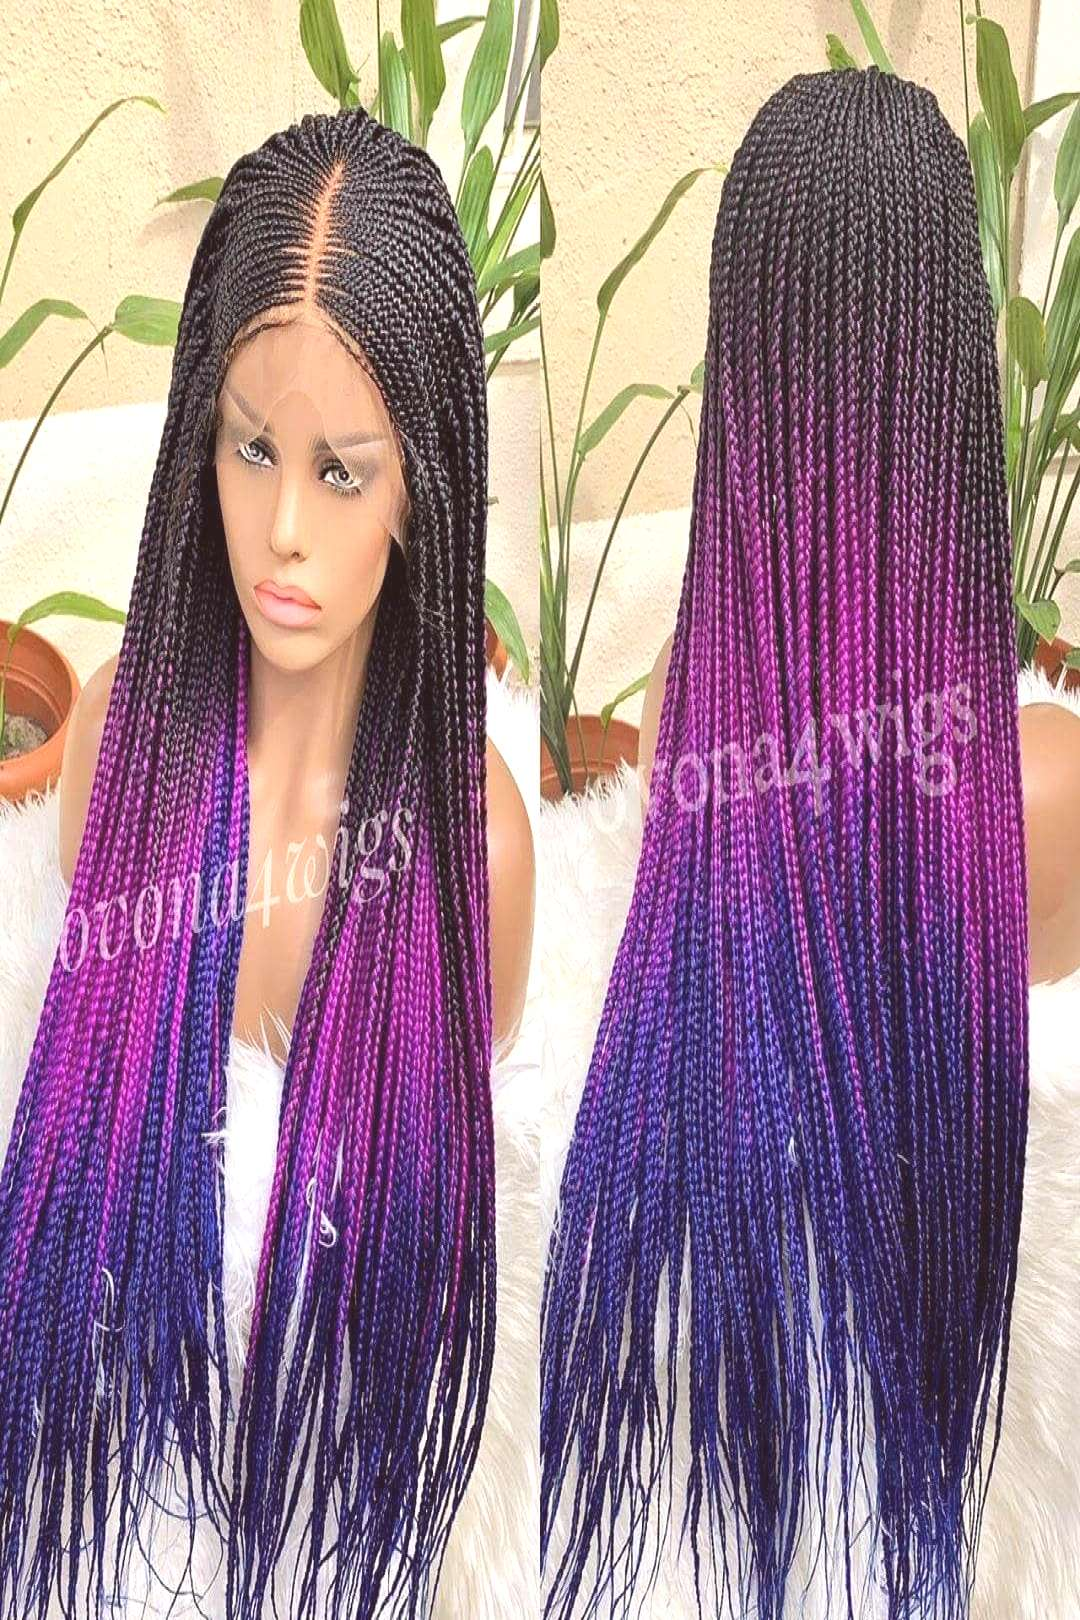 will you like to rock this 3tone ombre braided wig from @Ovona4wigs ? . Sales is still ongoing do